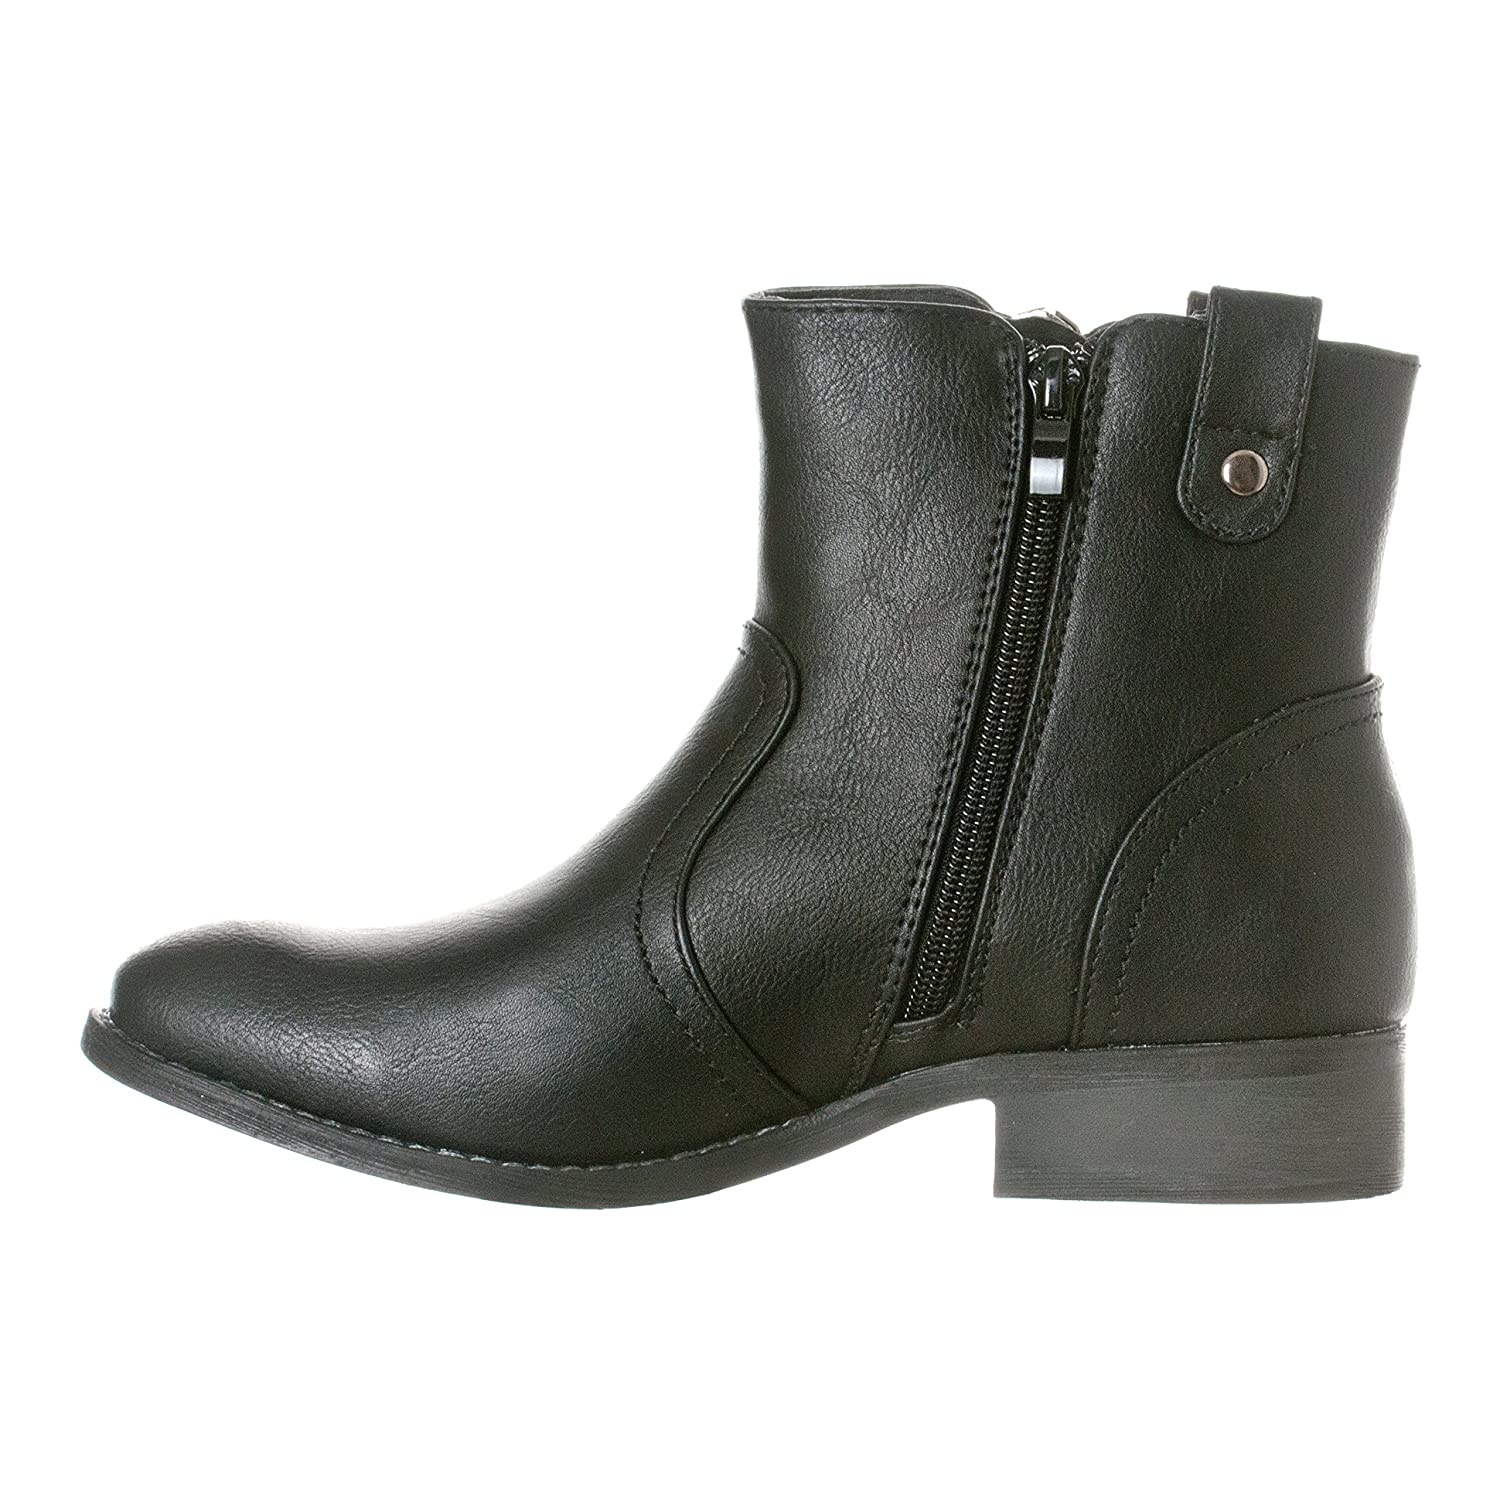 7f68aad859a6a Amazon.com | Riverberry Women's Hailey Western Style Low Heel Zip-Up Ankle  Bootie Boots | Ankle & Bootie